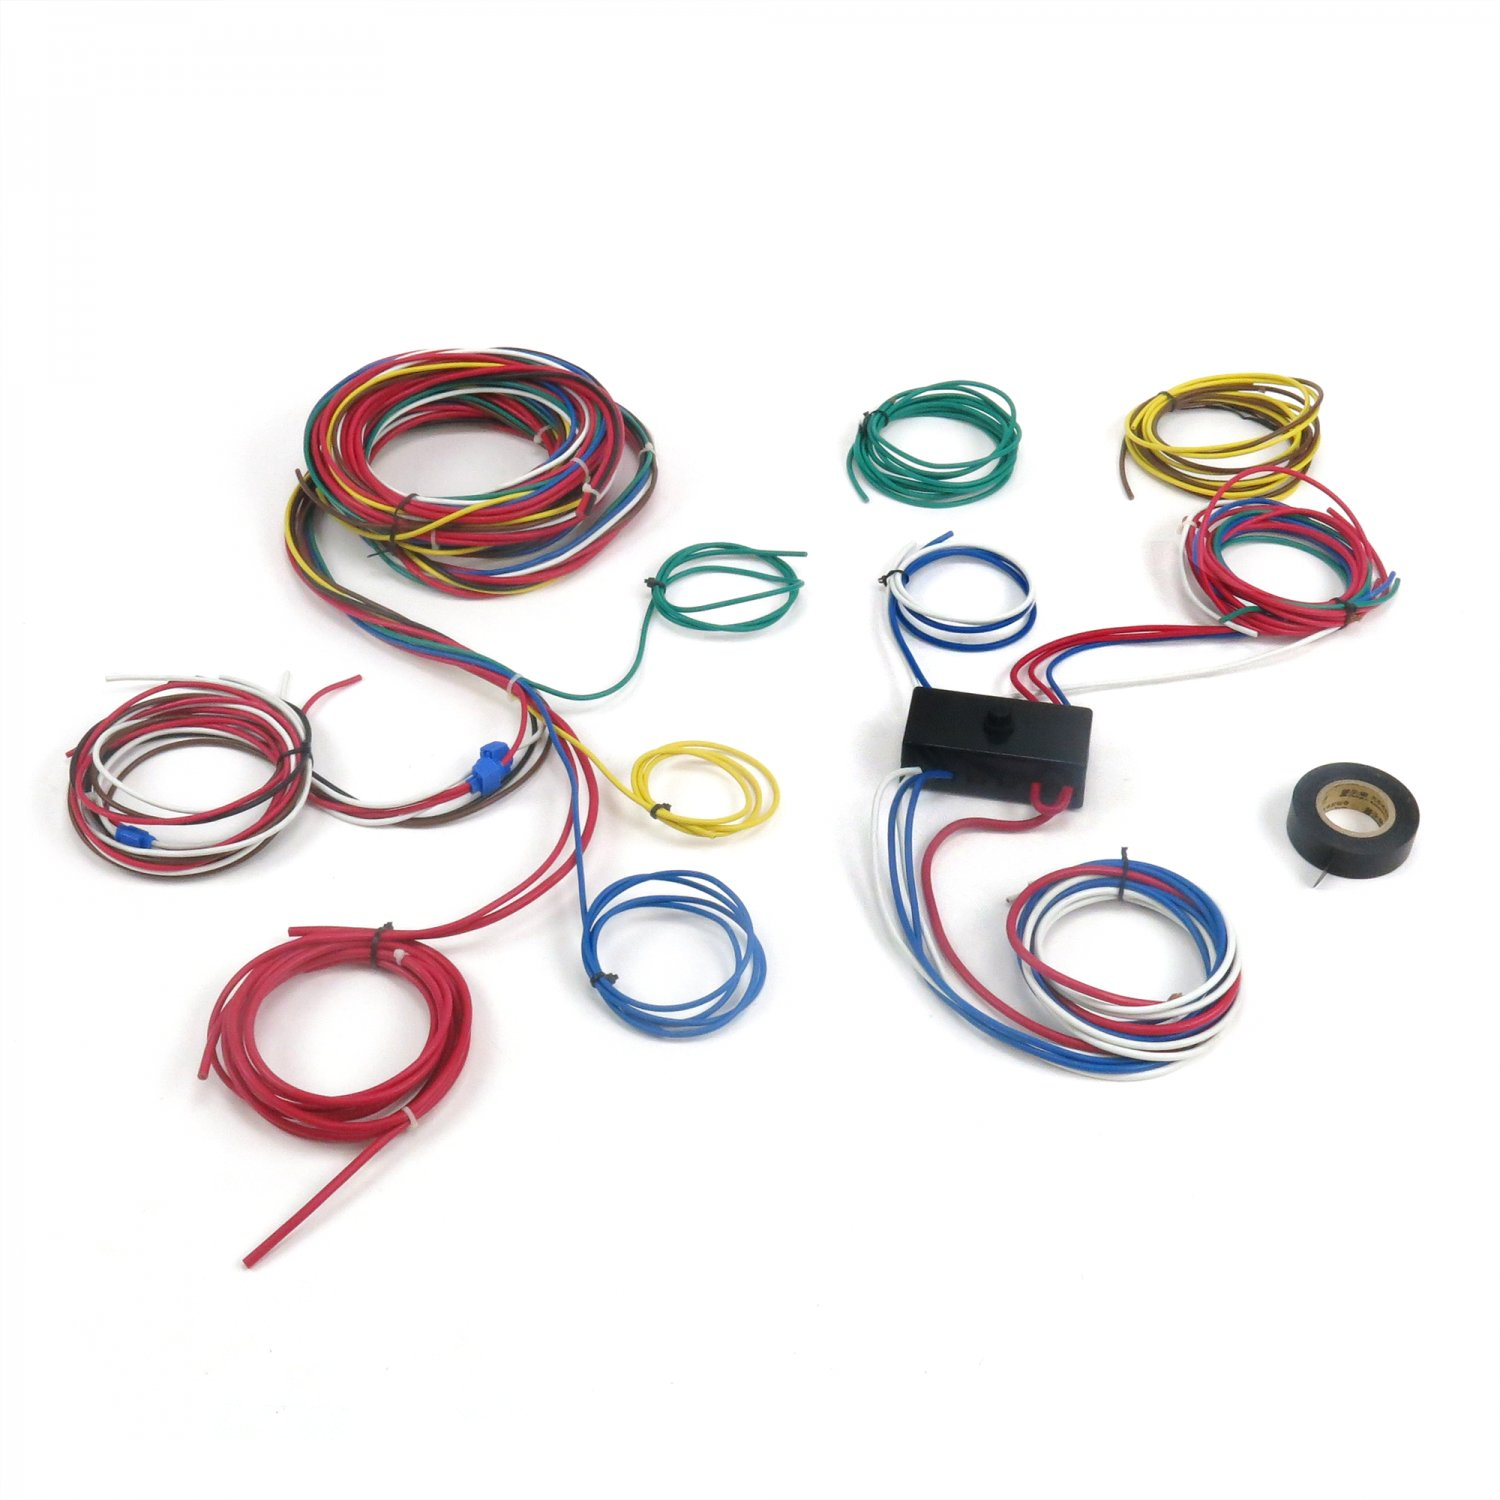 1500 dune buggy universal wiring harness w fuse box fits empi 9466 vw VW Wiring Harness Kits at cos-gaming.co